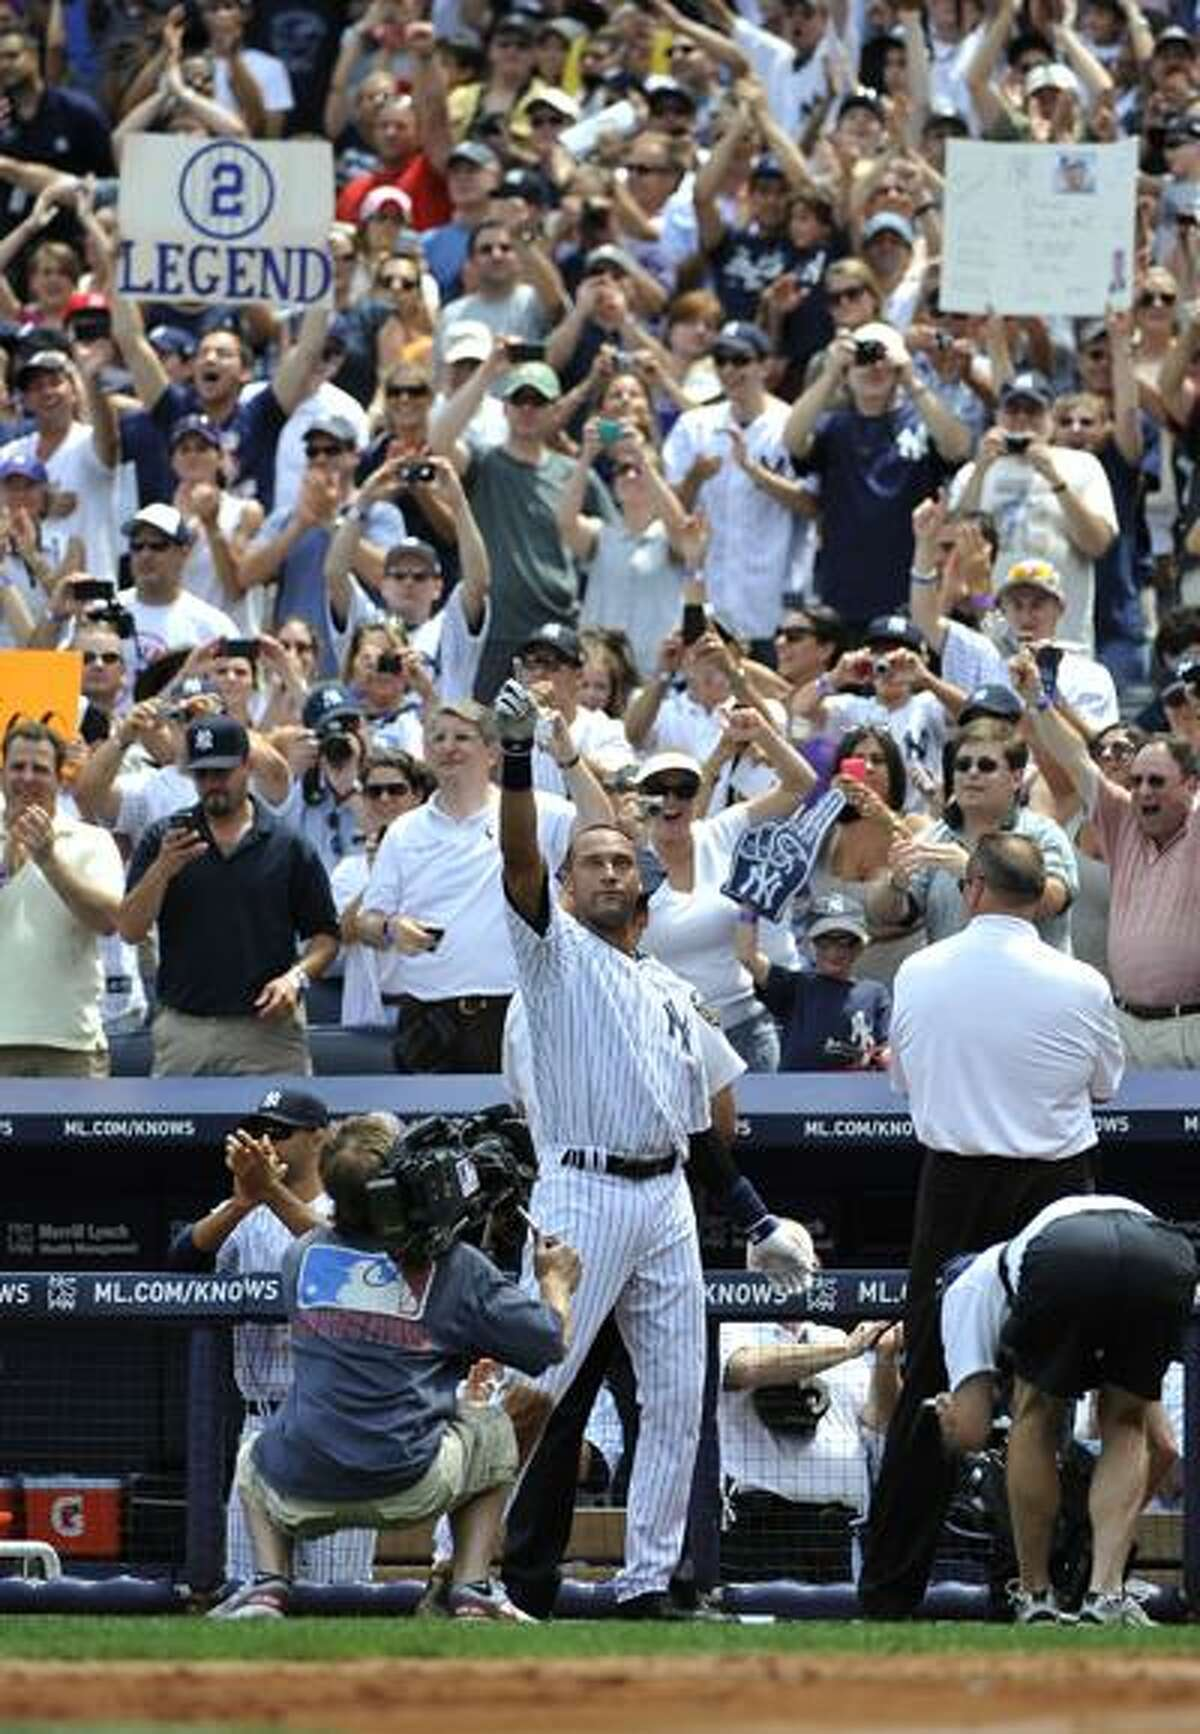 New York Yankees Derek Jeter waves to the cheers of the crowd after he hit a solo home run, his 3, 000th career hit off of Tampa Bay Rays starting pitcher David Price in the third inning of a baseball game on Saturday, July 9, 2011 at Yankee Stadium in New York. (AP Photo/Kathy Kmonicek)